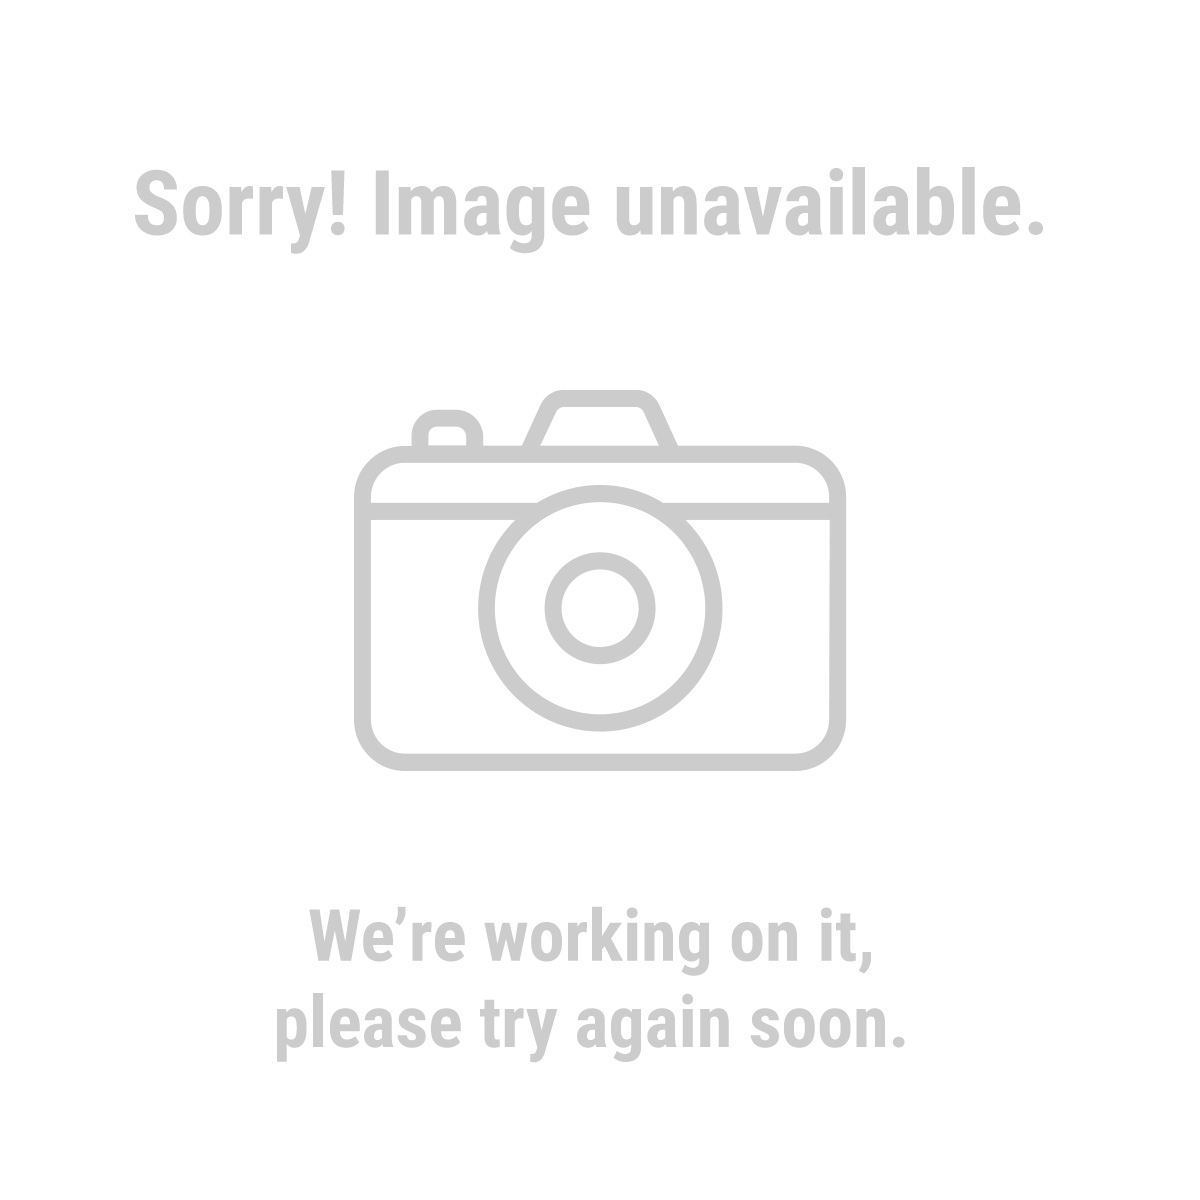 Western Safety 94104 Lumbar Support Belt - Large